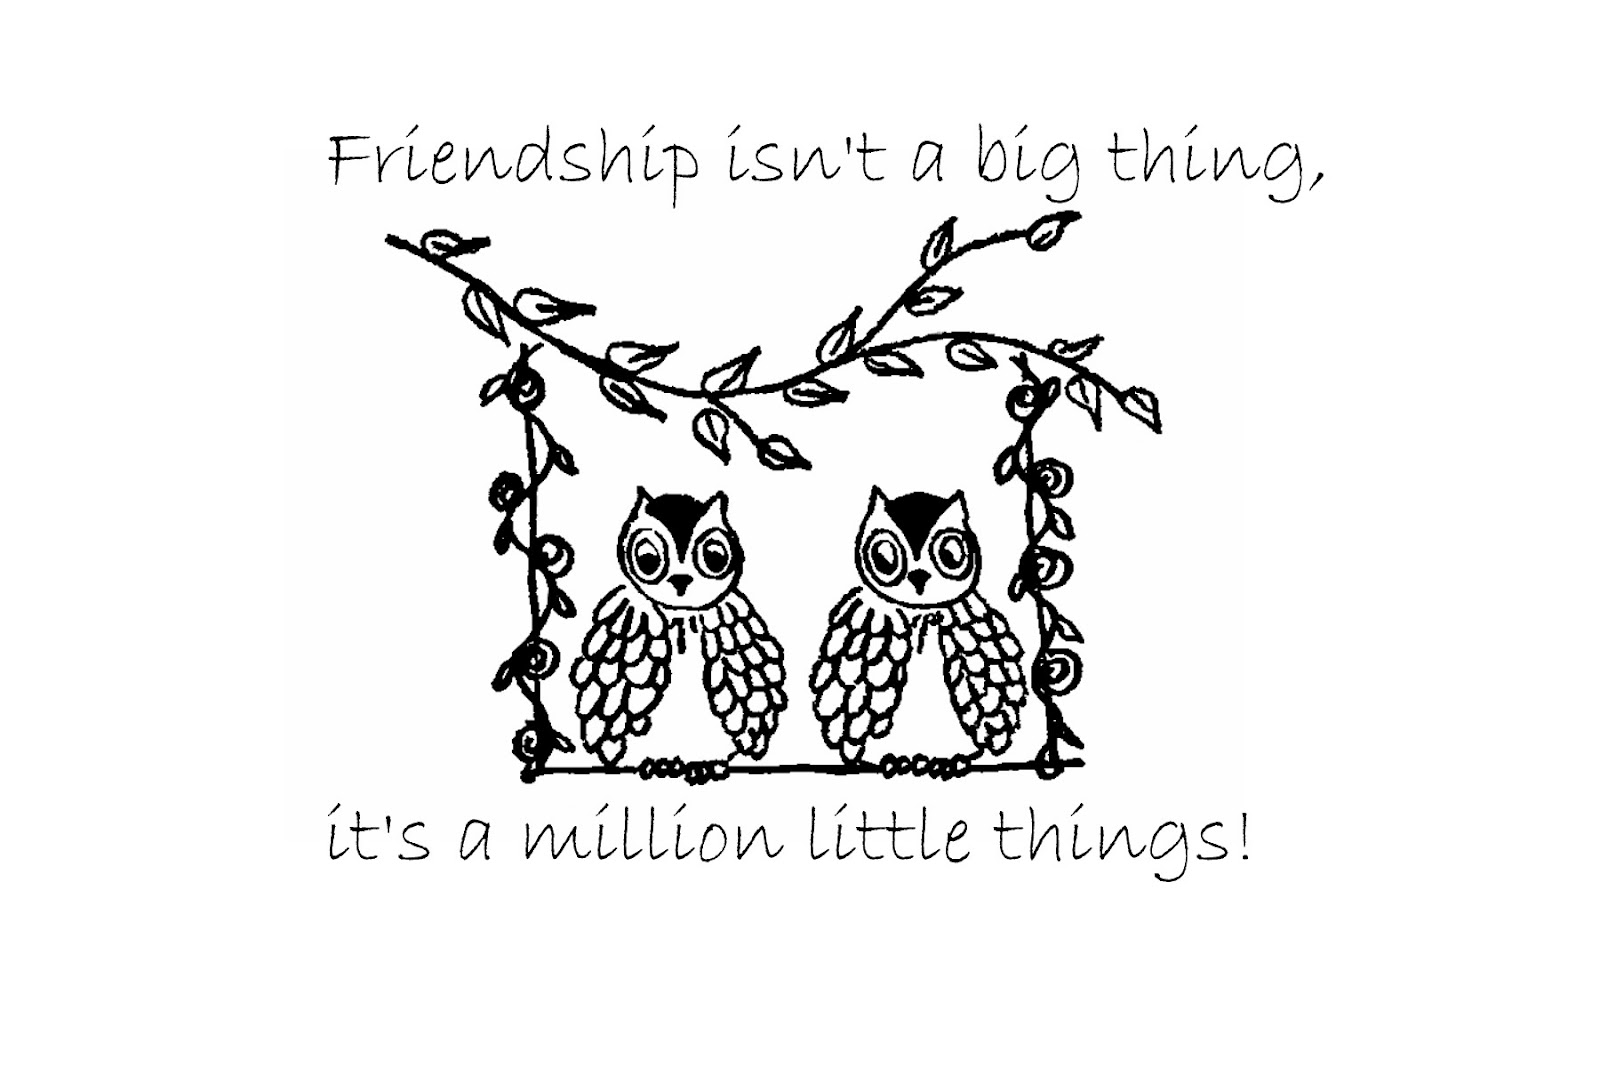 Friendship sayings embroidery designs quilt of life quote funny friendship sayings embroidery designs sew little fabric by paula storm free embroidery patterns bankloansurffo Image collections